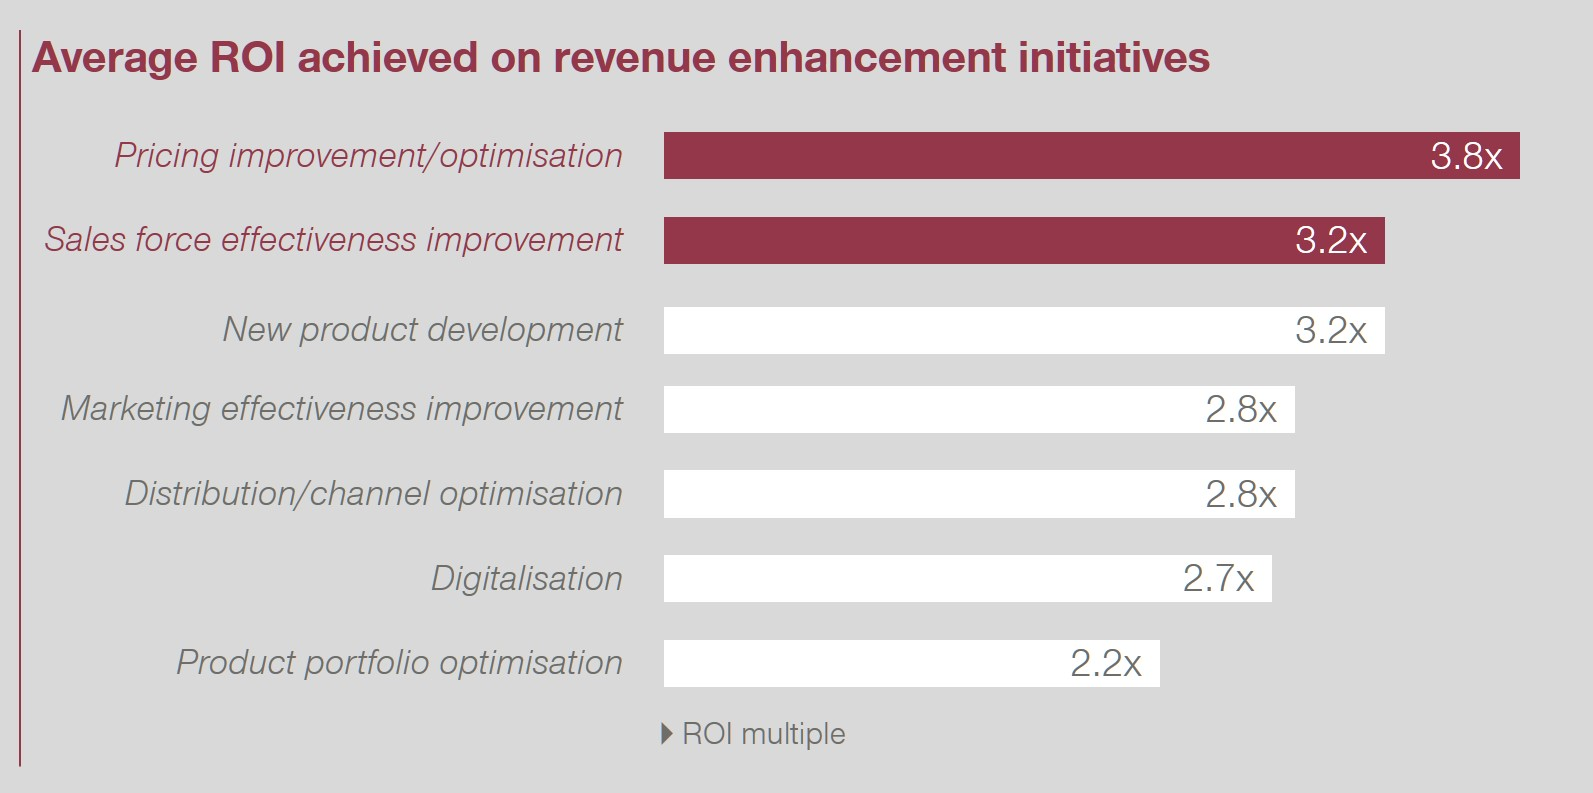 Average ROI achieved on revenue enhancement initiatives